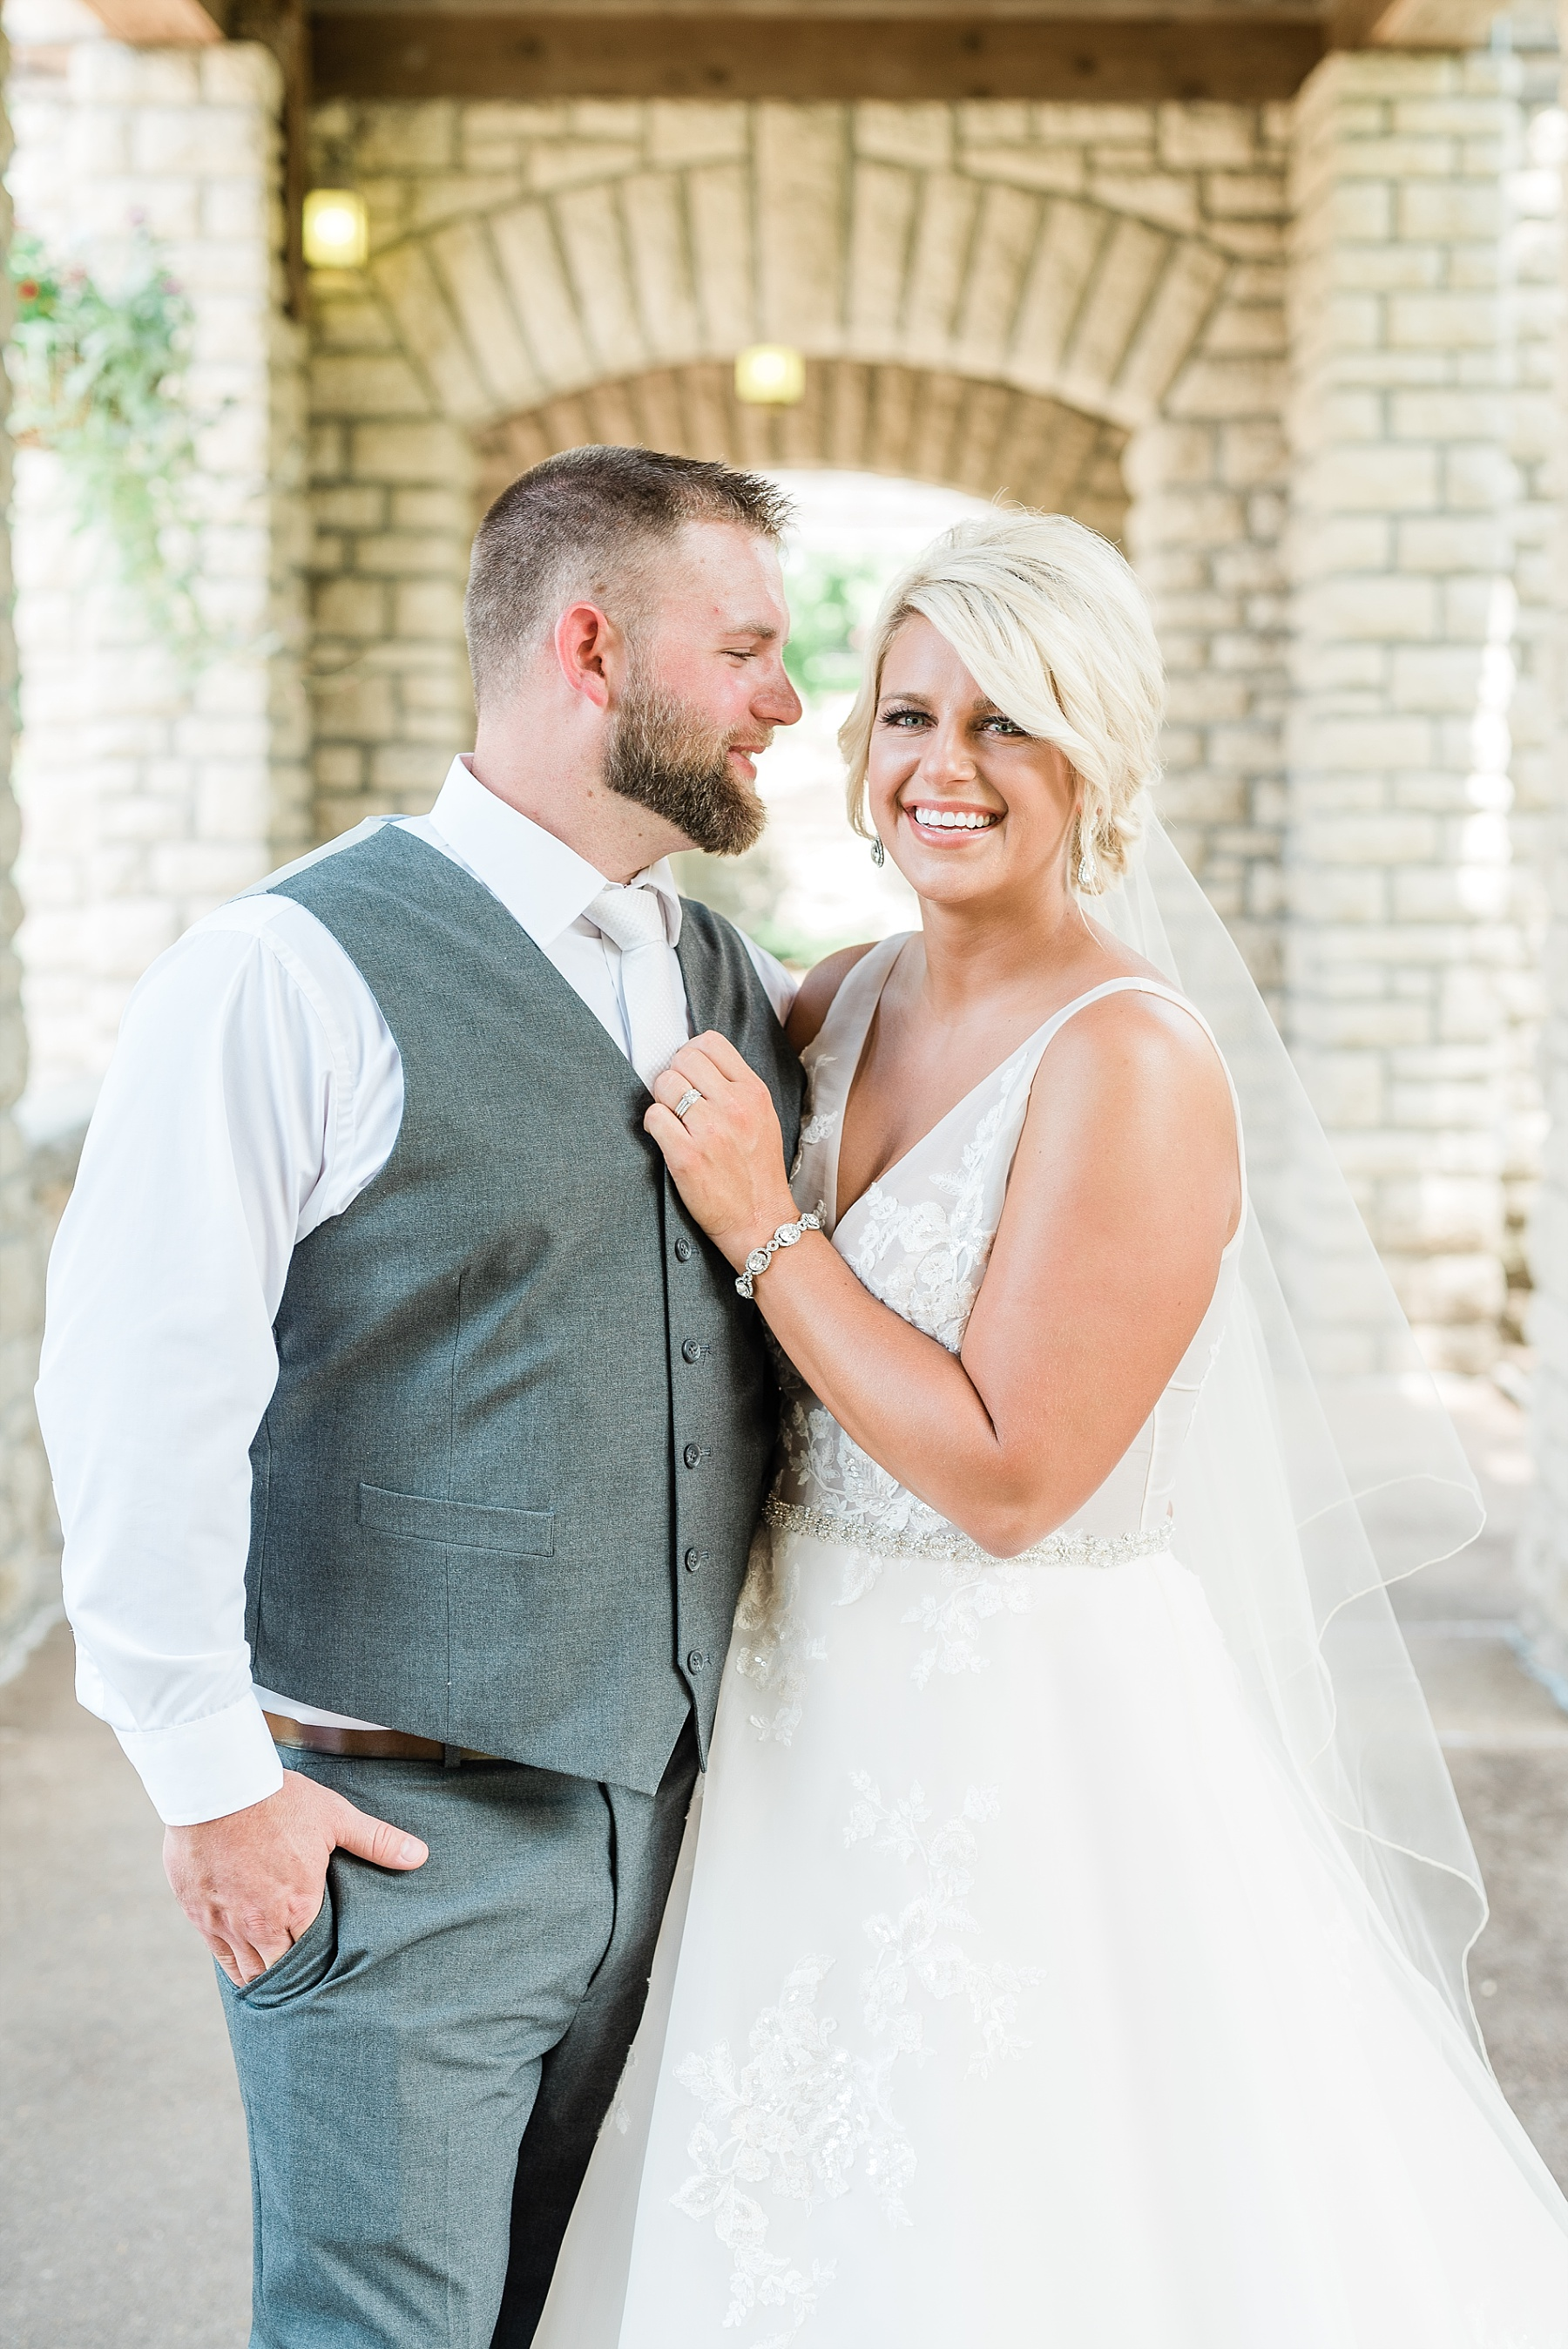 Rose Gold, White, and Greenery High Class Summer Wedding at The Millbottom in Downtown Jefferson City by Kelsi Kliethermes Photography_0024.jpg